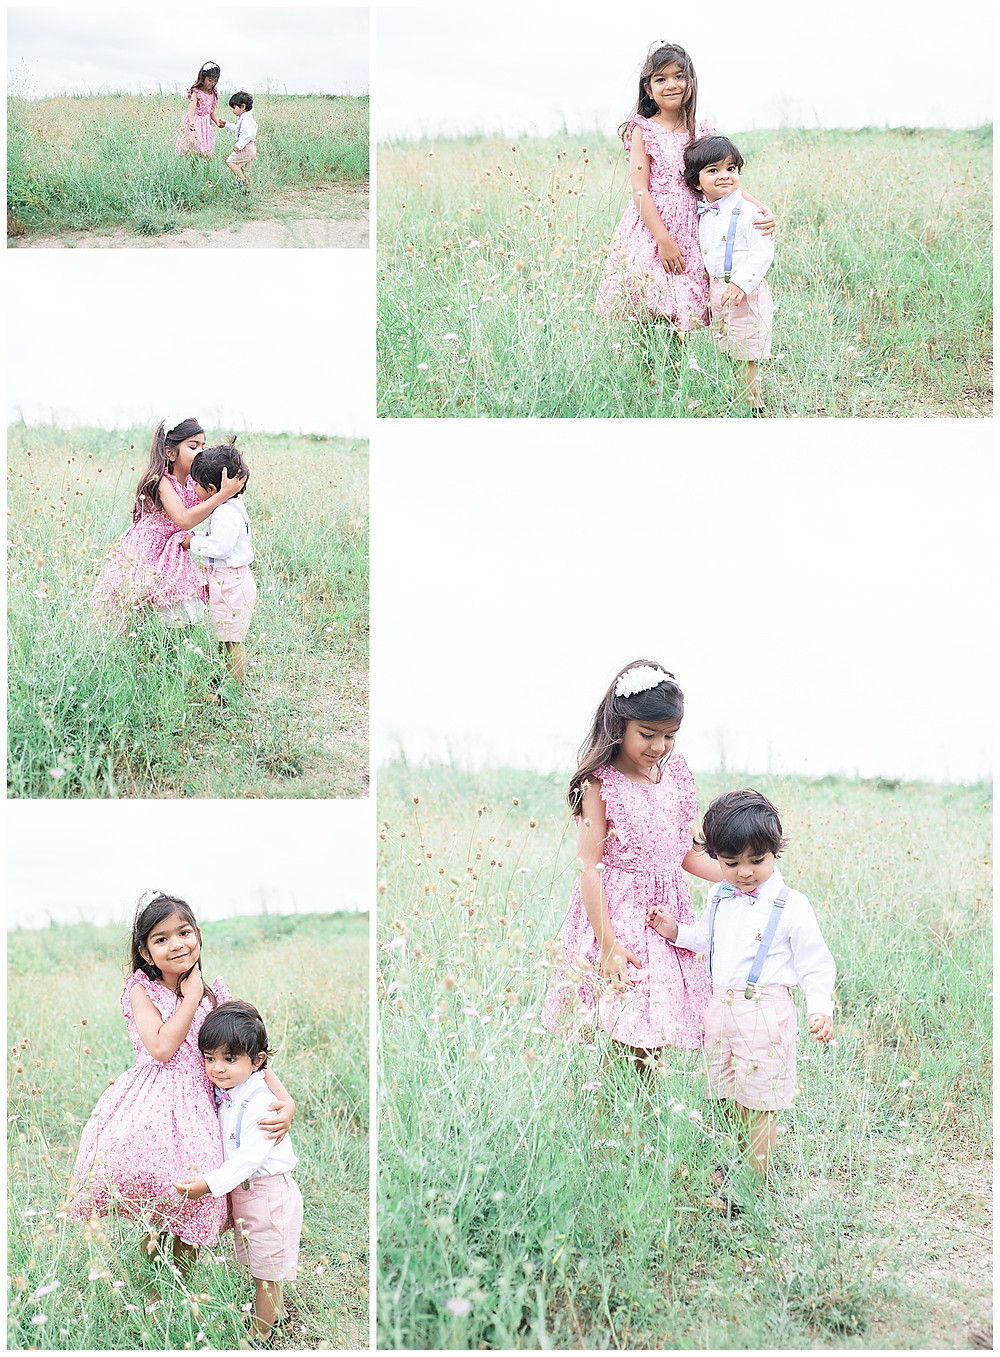 sibling and child portraits in Houston